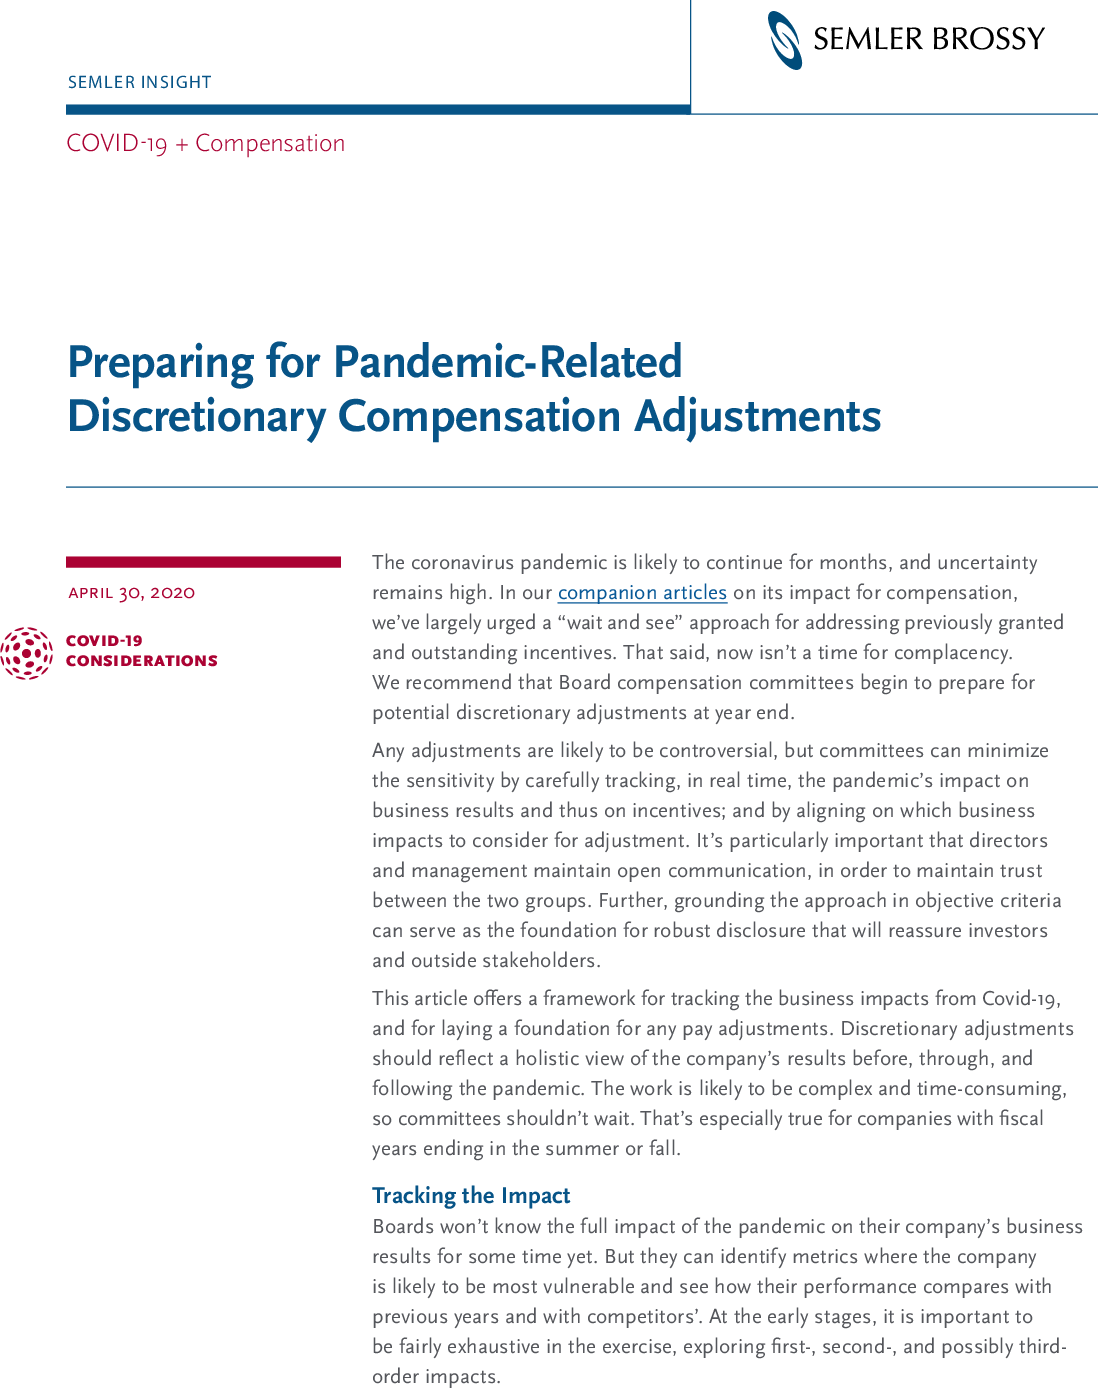 Preparing for Pandemic-Related Discretionary Compensation Adjustments